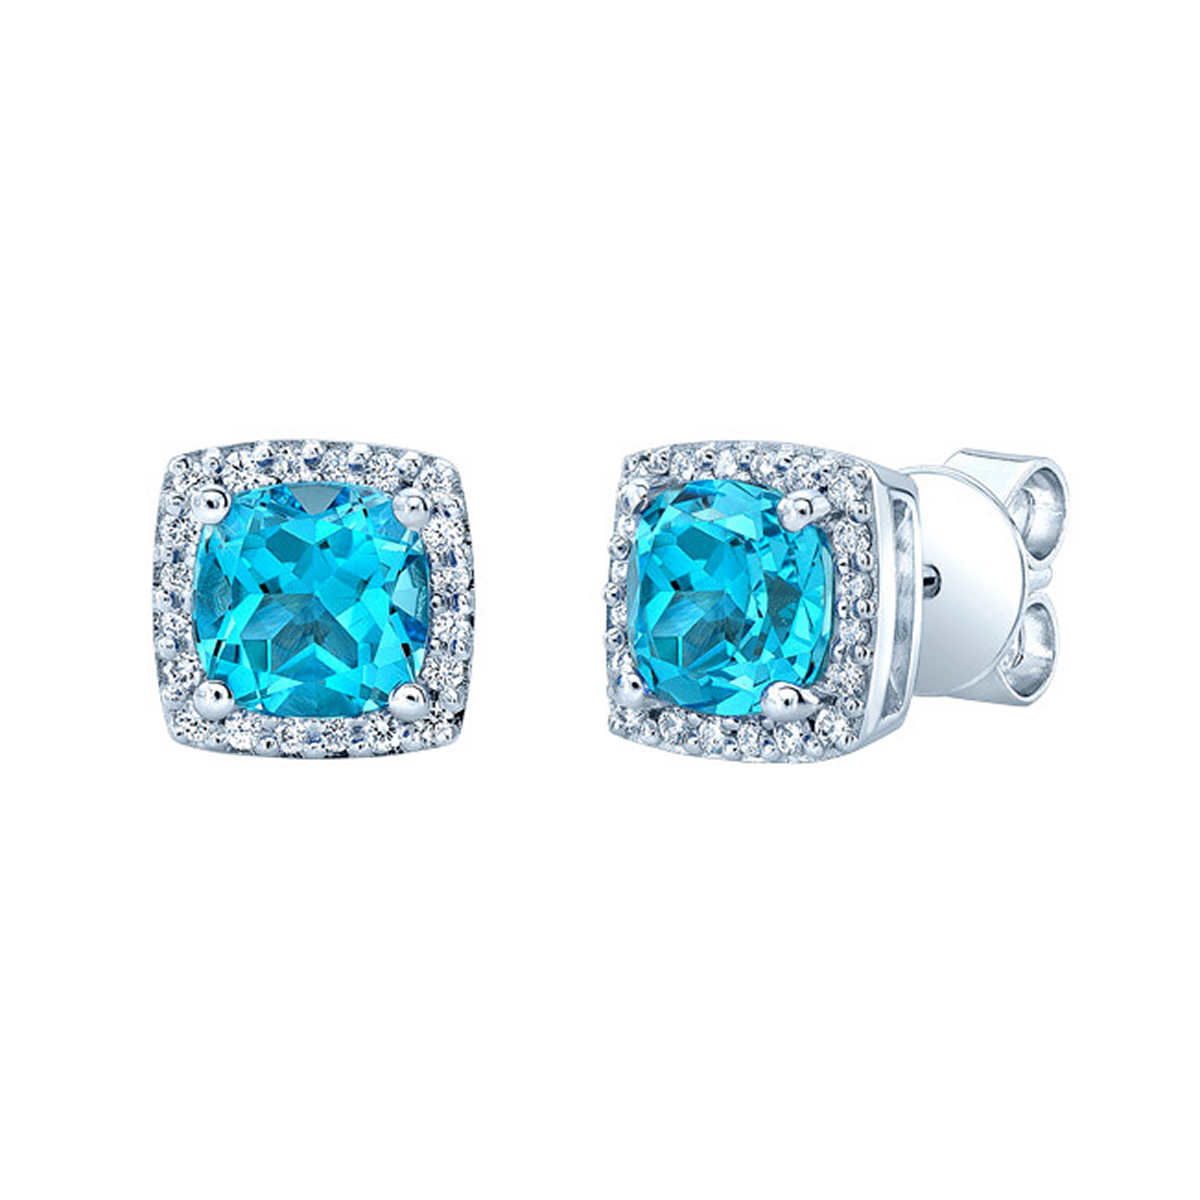 Swiss Blue Topaz And Diamond 14kt White Gold Earrings Item #781497 Click  To Zoom